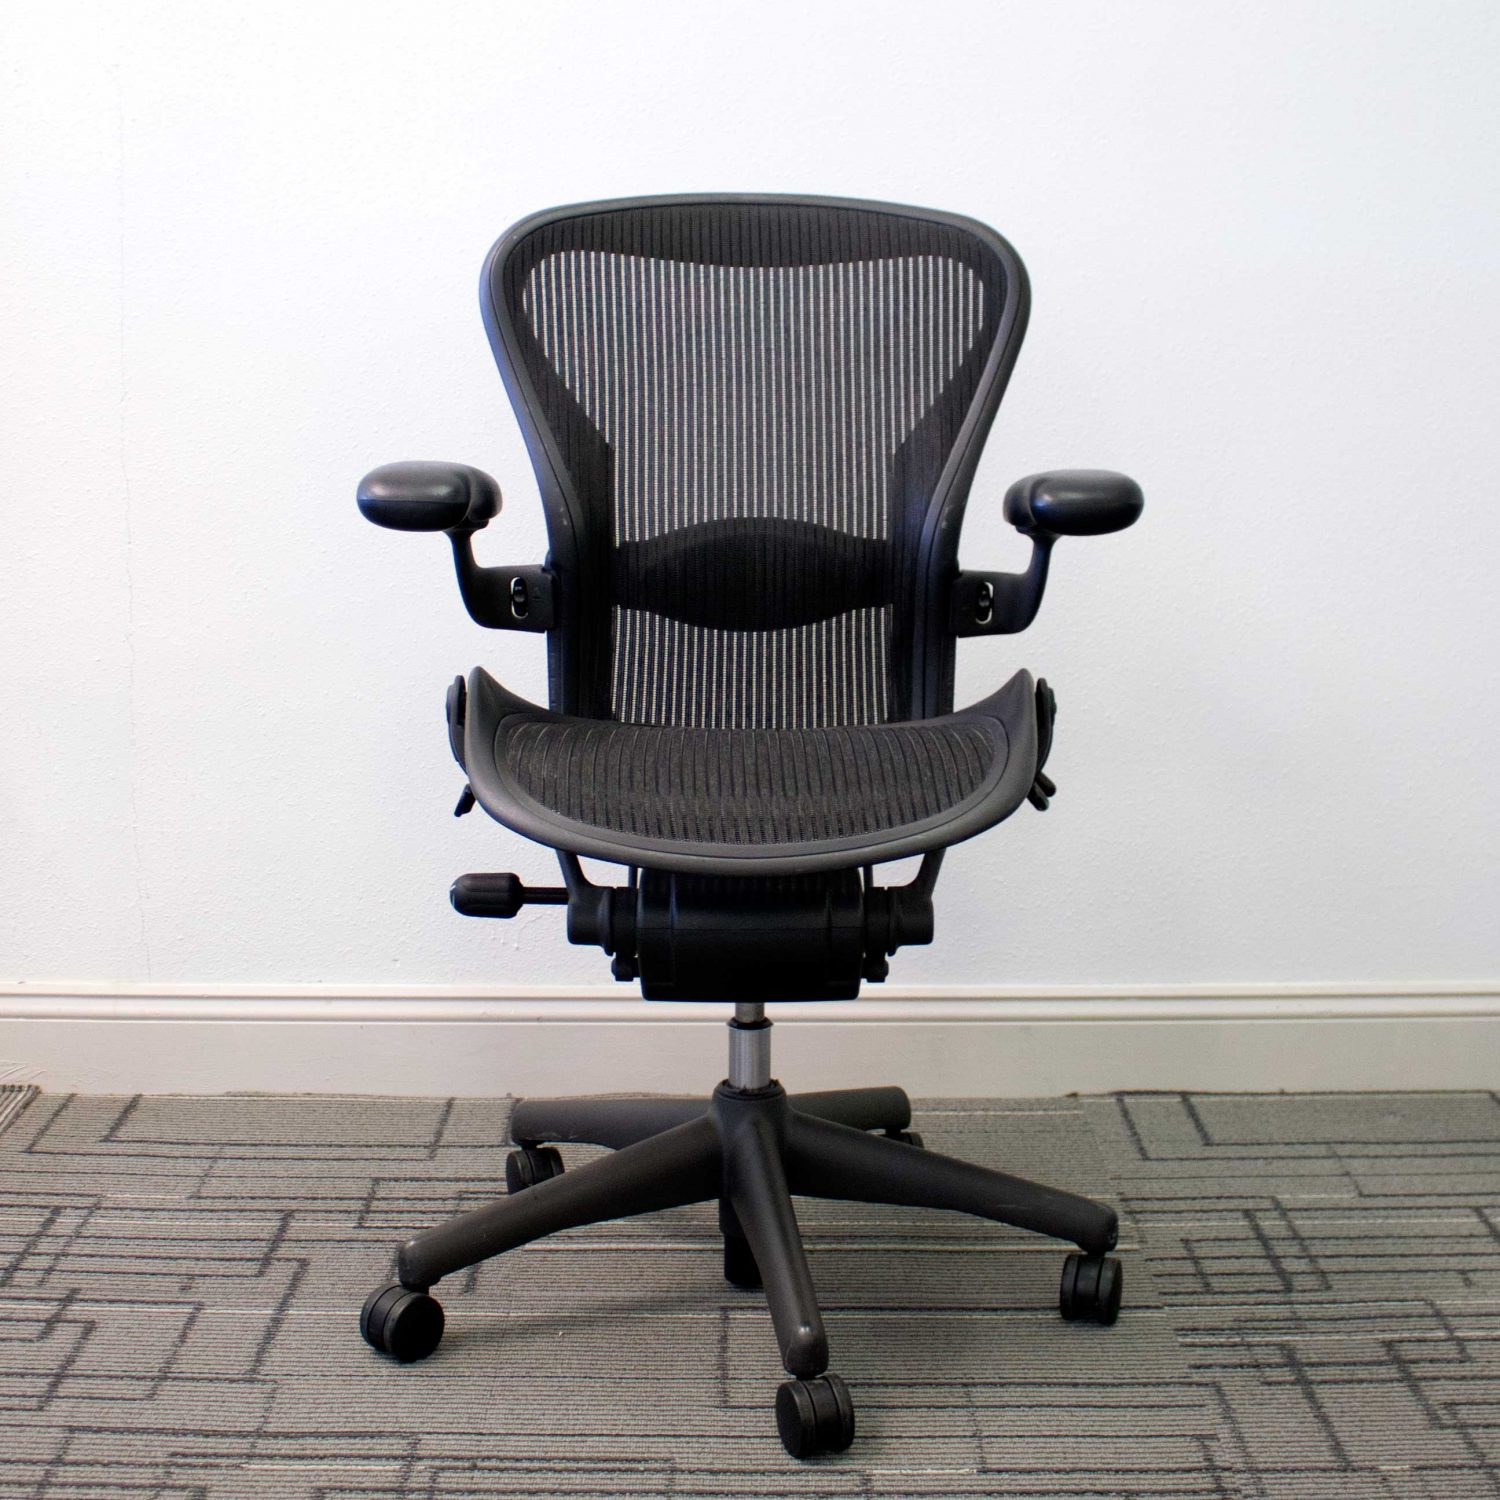 aeron chair used champagne banquet covers herman miller chairs size b vision office